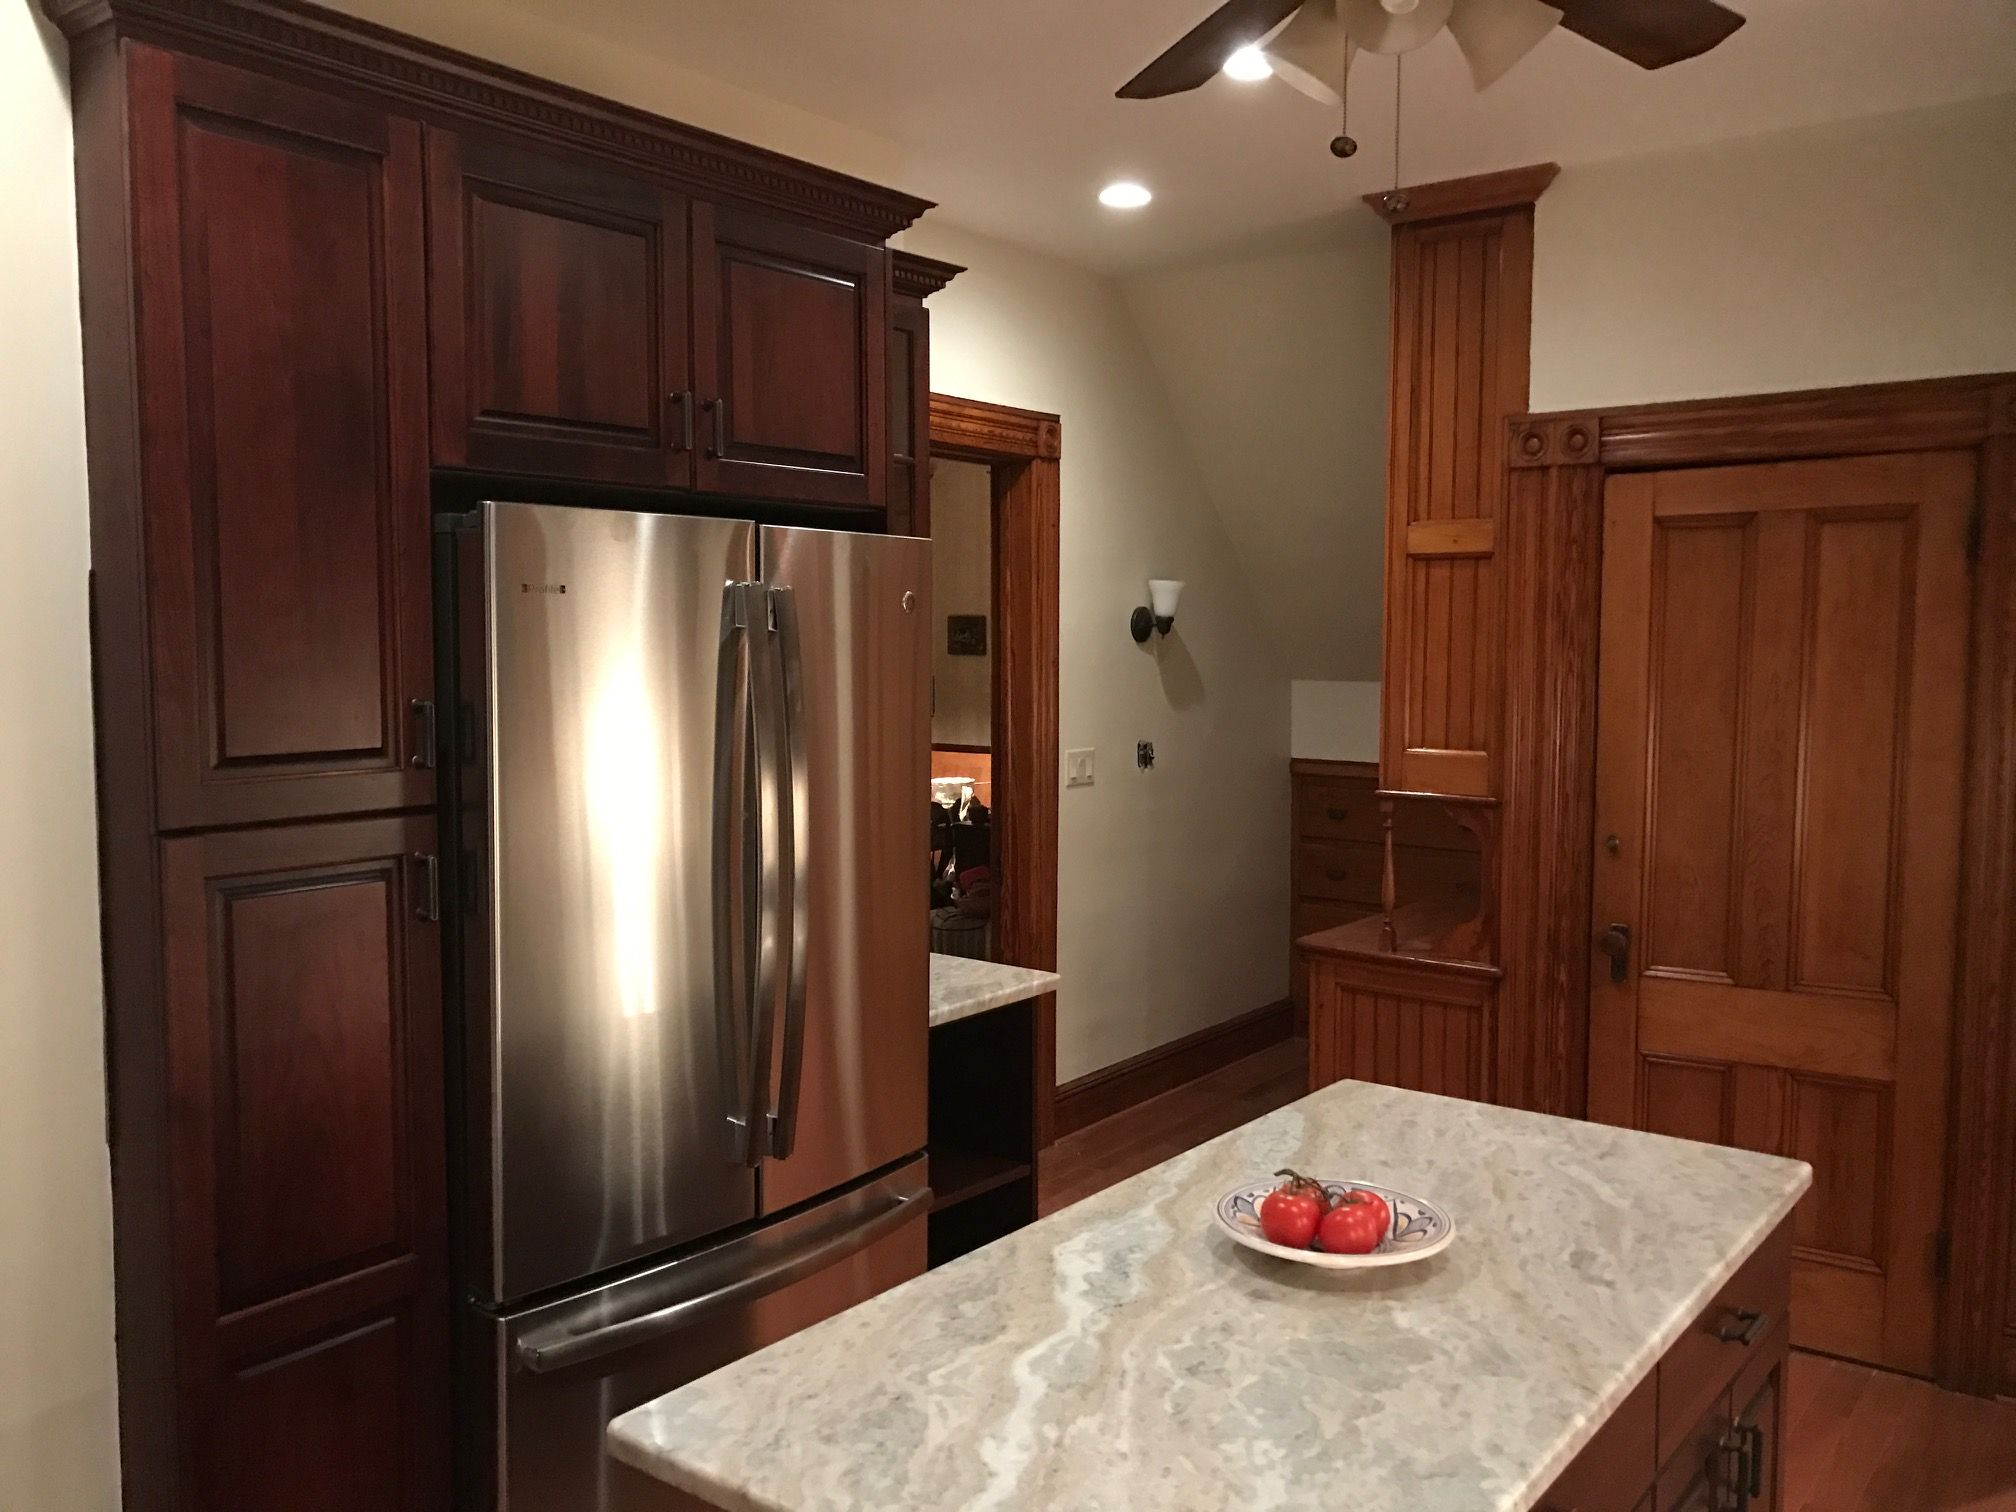 Newly Finished Kitchen Incorporating The Old With The New Onthespothomeimprovements Home Improvement Companies Kitchen Home Decor